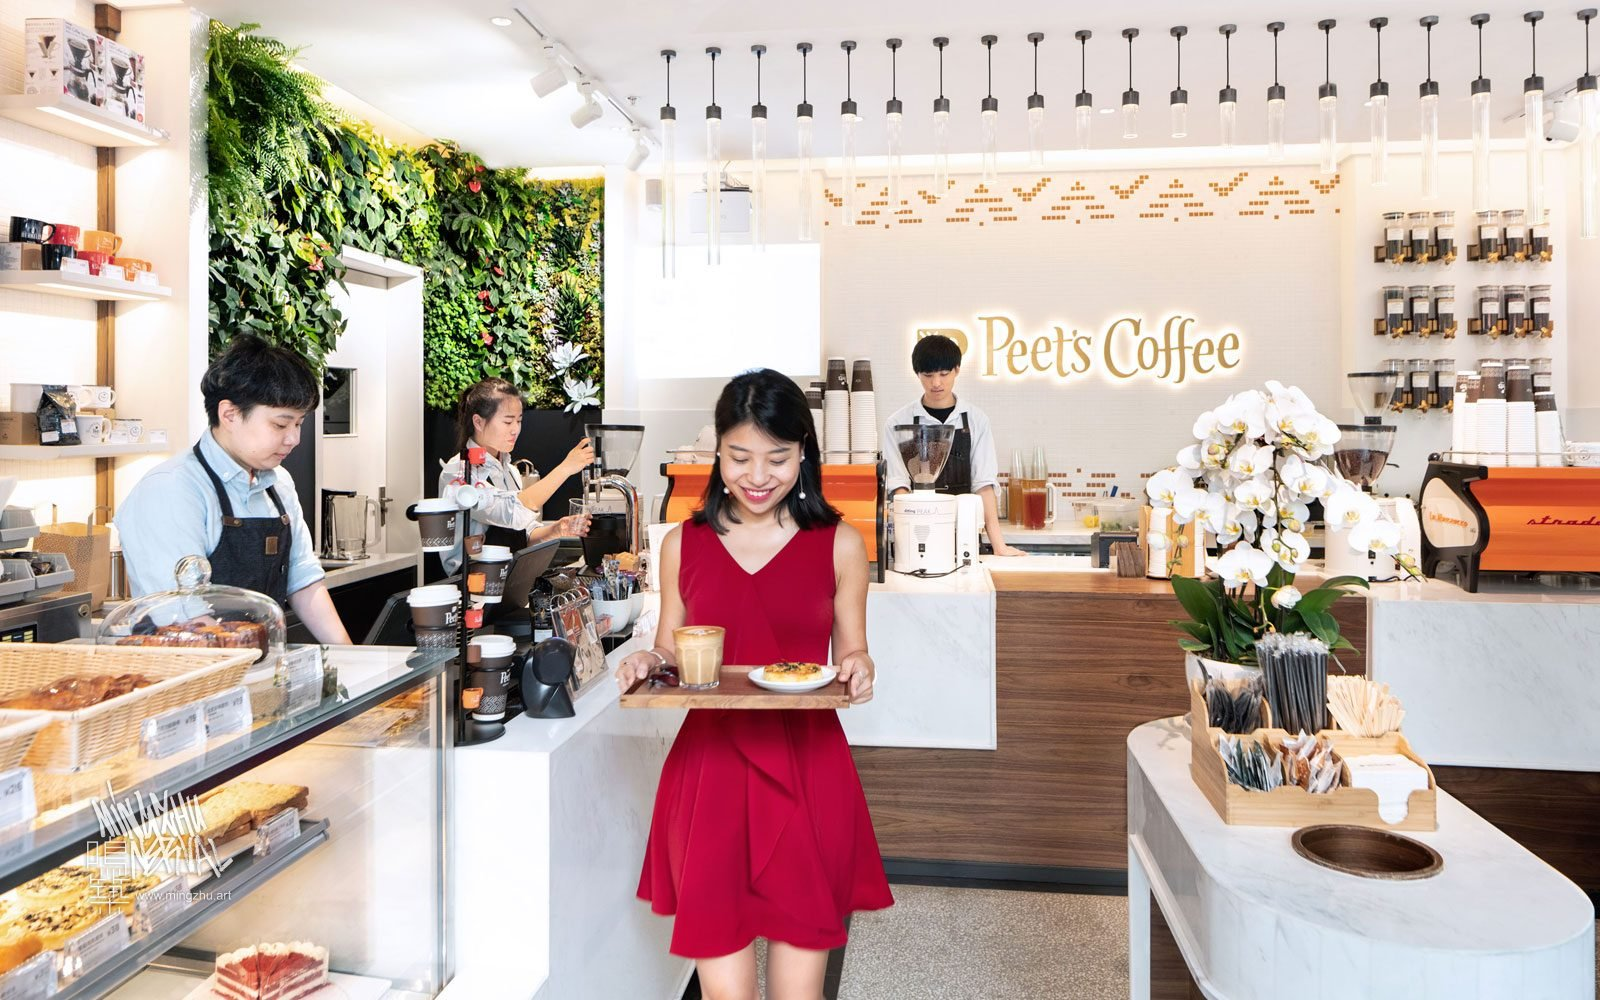 At Mingzhu Nerval, we thrive at creating the most beautiful vertical gardens in the world. For Peet's Coffee, we created a californian living wall design - Shanghai, 2018.